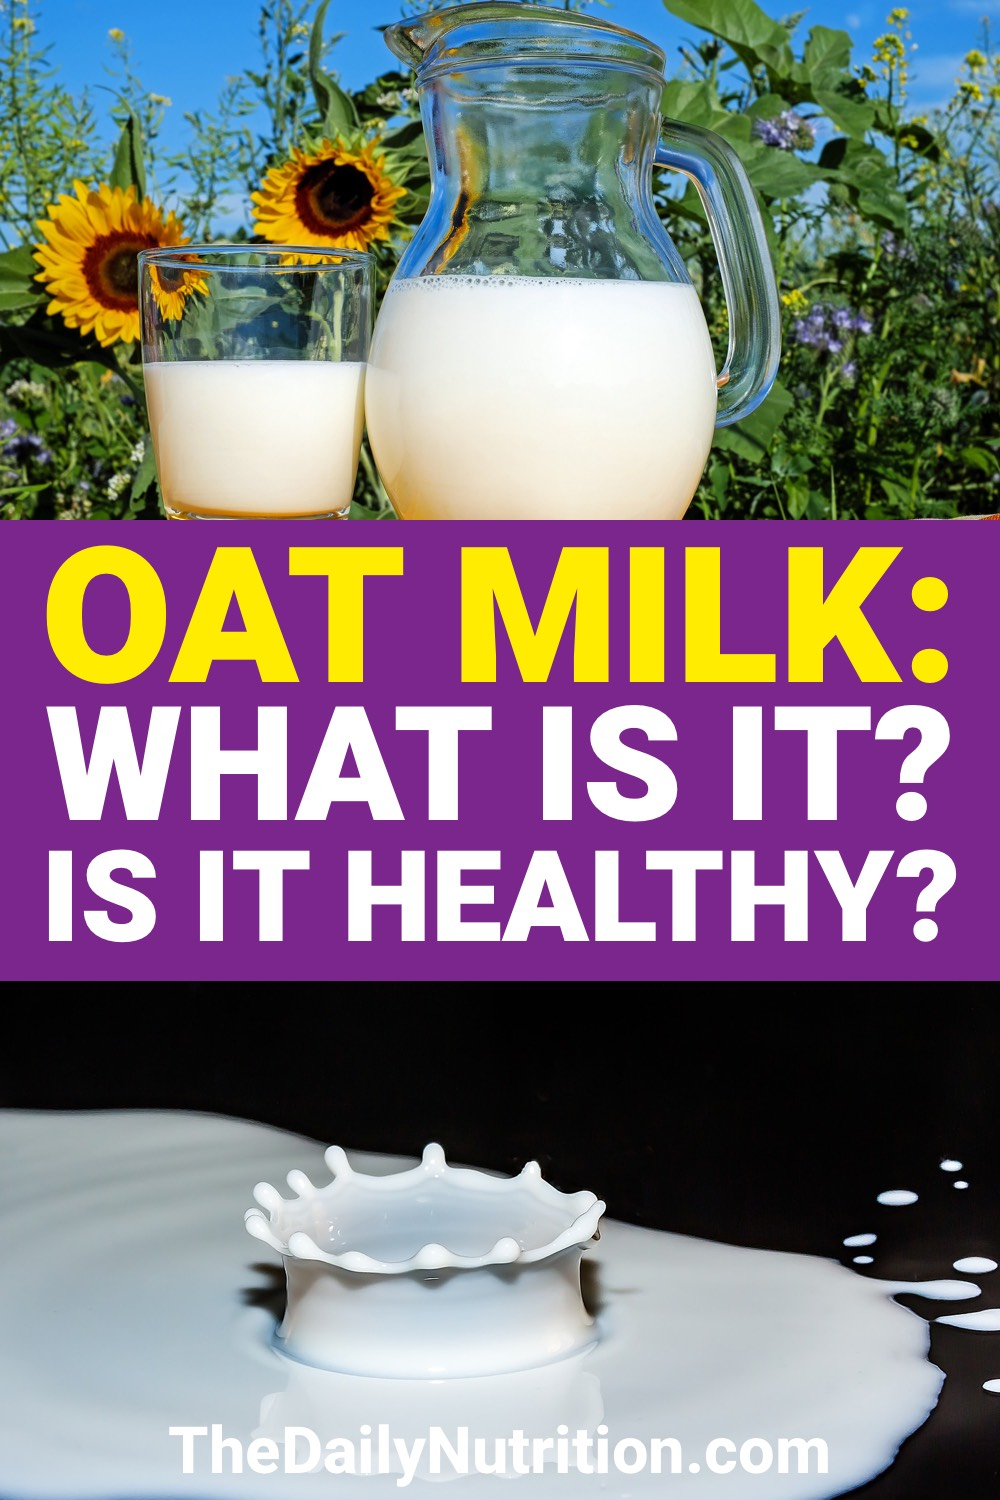 If you want an alternative to regular milk, take a look at oat milk. Here are benefits of oat milk and why you should drink it.